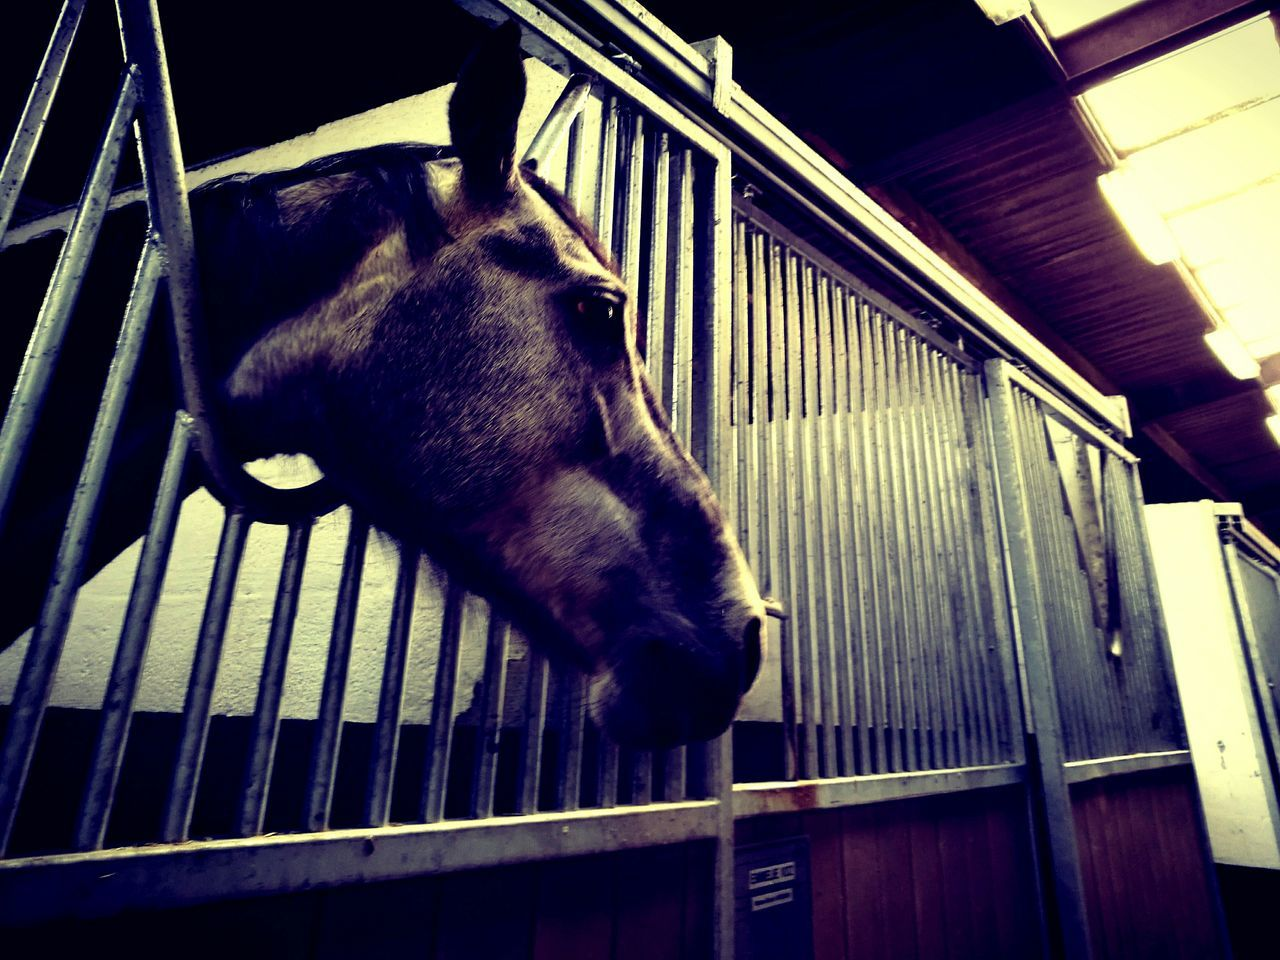 domestic animals, horse, animal themes, mammal, railing, one animal, no people, livestock, indoors, day, low angle view, standing, close-up